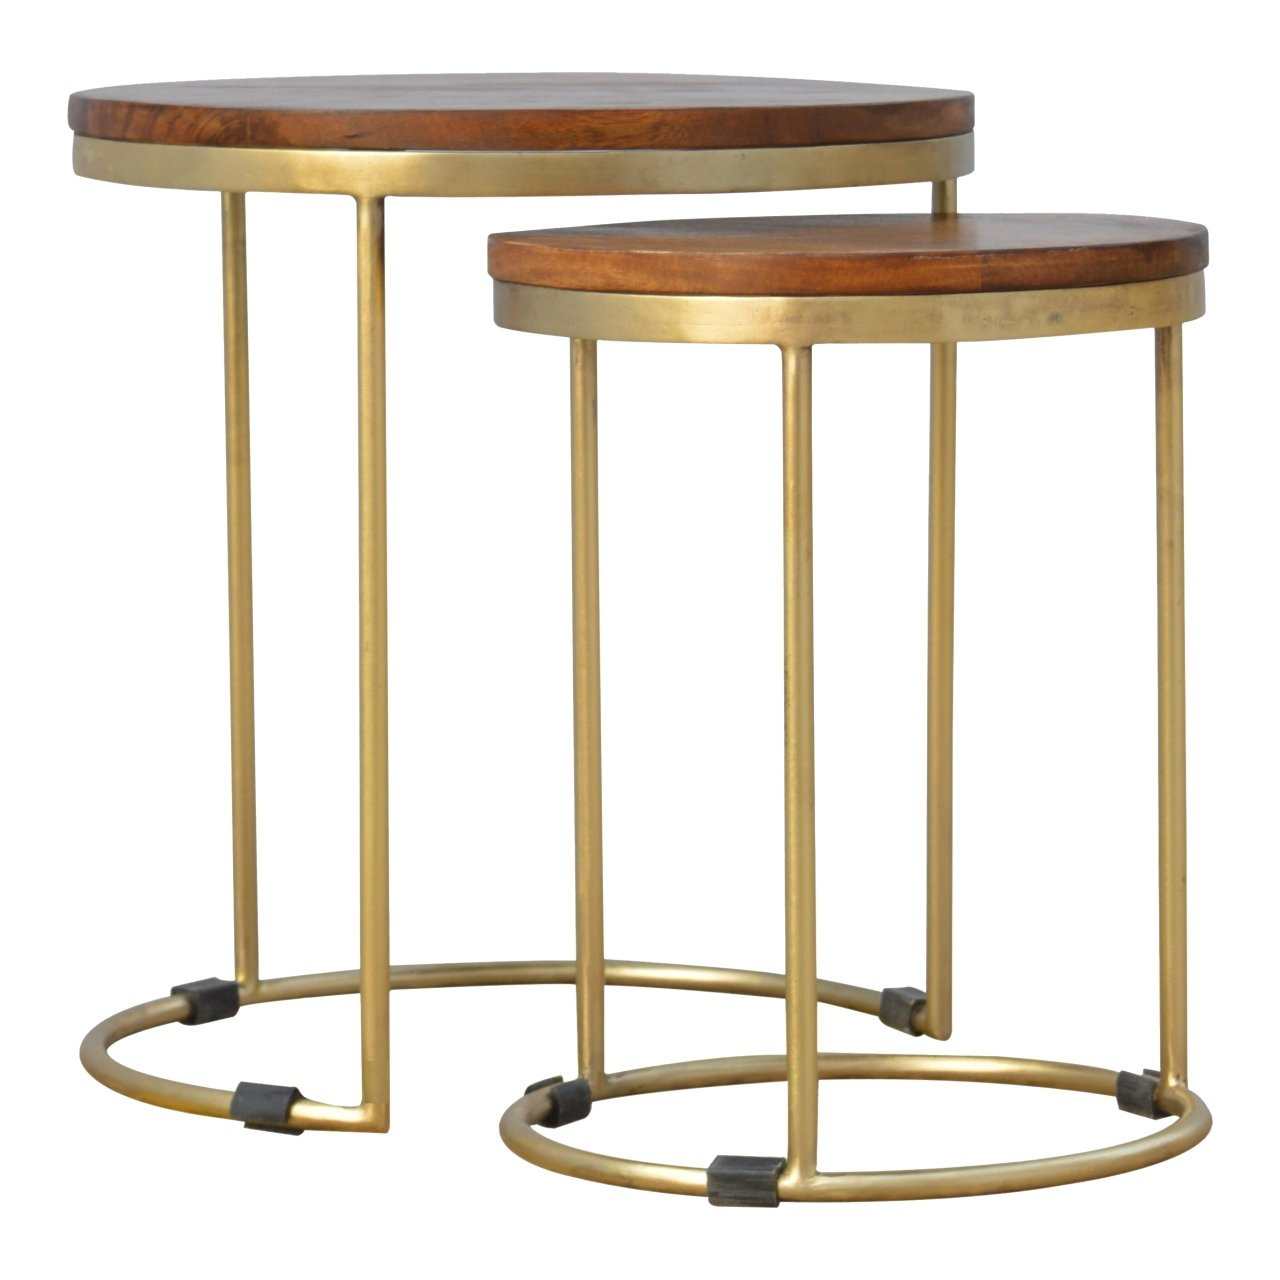 Artisan Furniture Round Stool Set with Base, Wood, Top Chestnut/Gold Touch, 40 x 40 x 45 cm Global Vision Company IN241